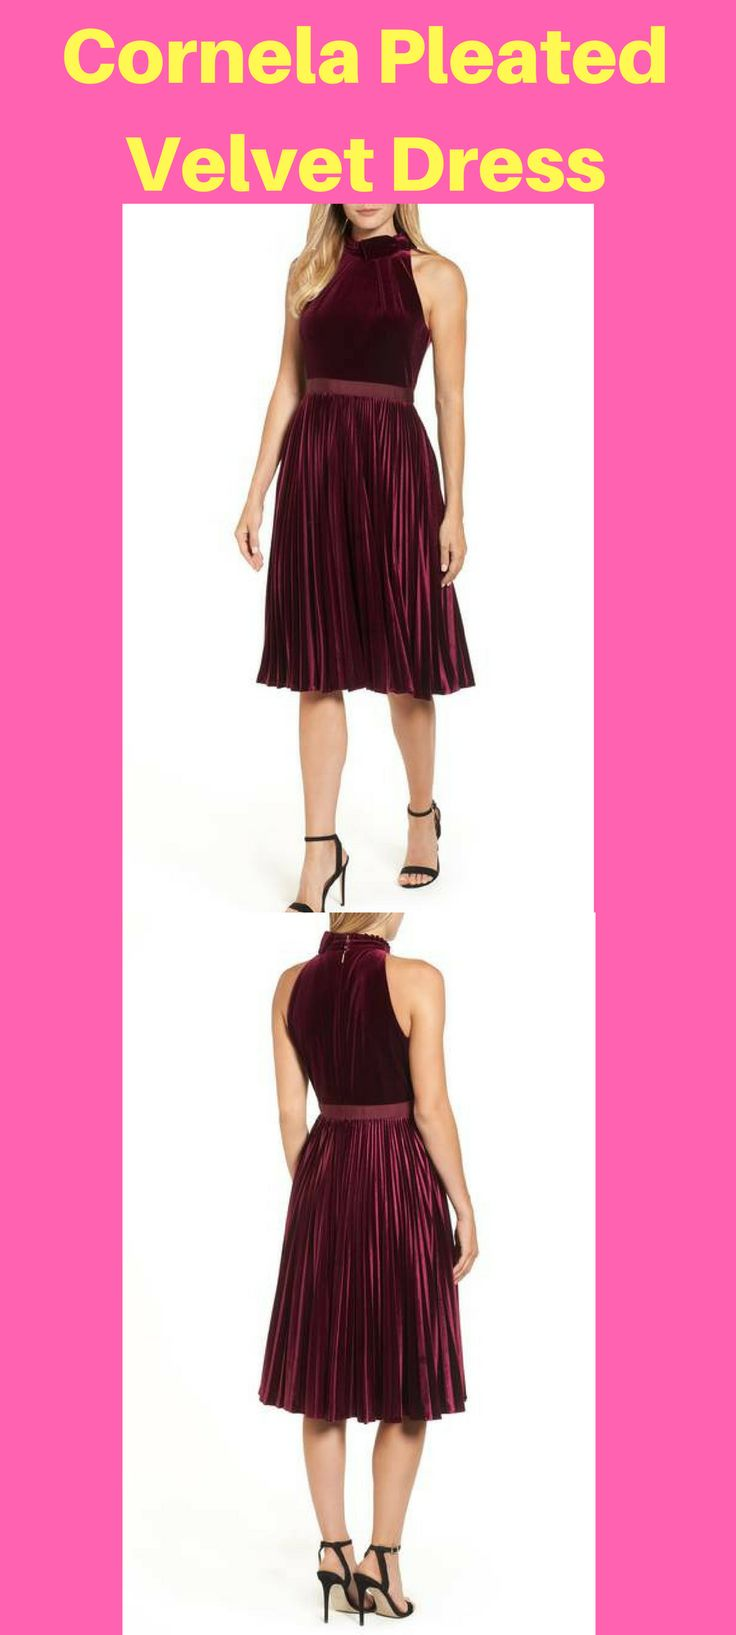 Cornela Pleated Velvet Dress #velvetdress #velvetdressdesign #fashion #dress #dressforsale velvet dress | velvet dress outfit | velvet dress short | velvet dress pakistani | velvet dress short outfit | Velvet dress | Velvet Dress 5 | Velvet Dresses style | velvet dresses |